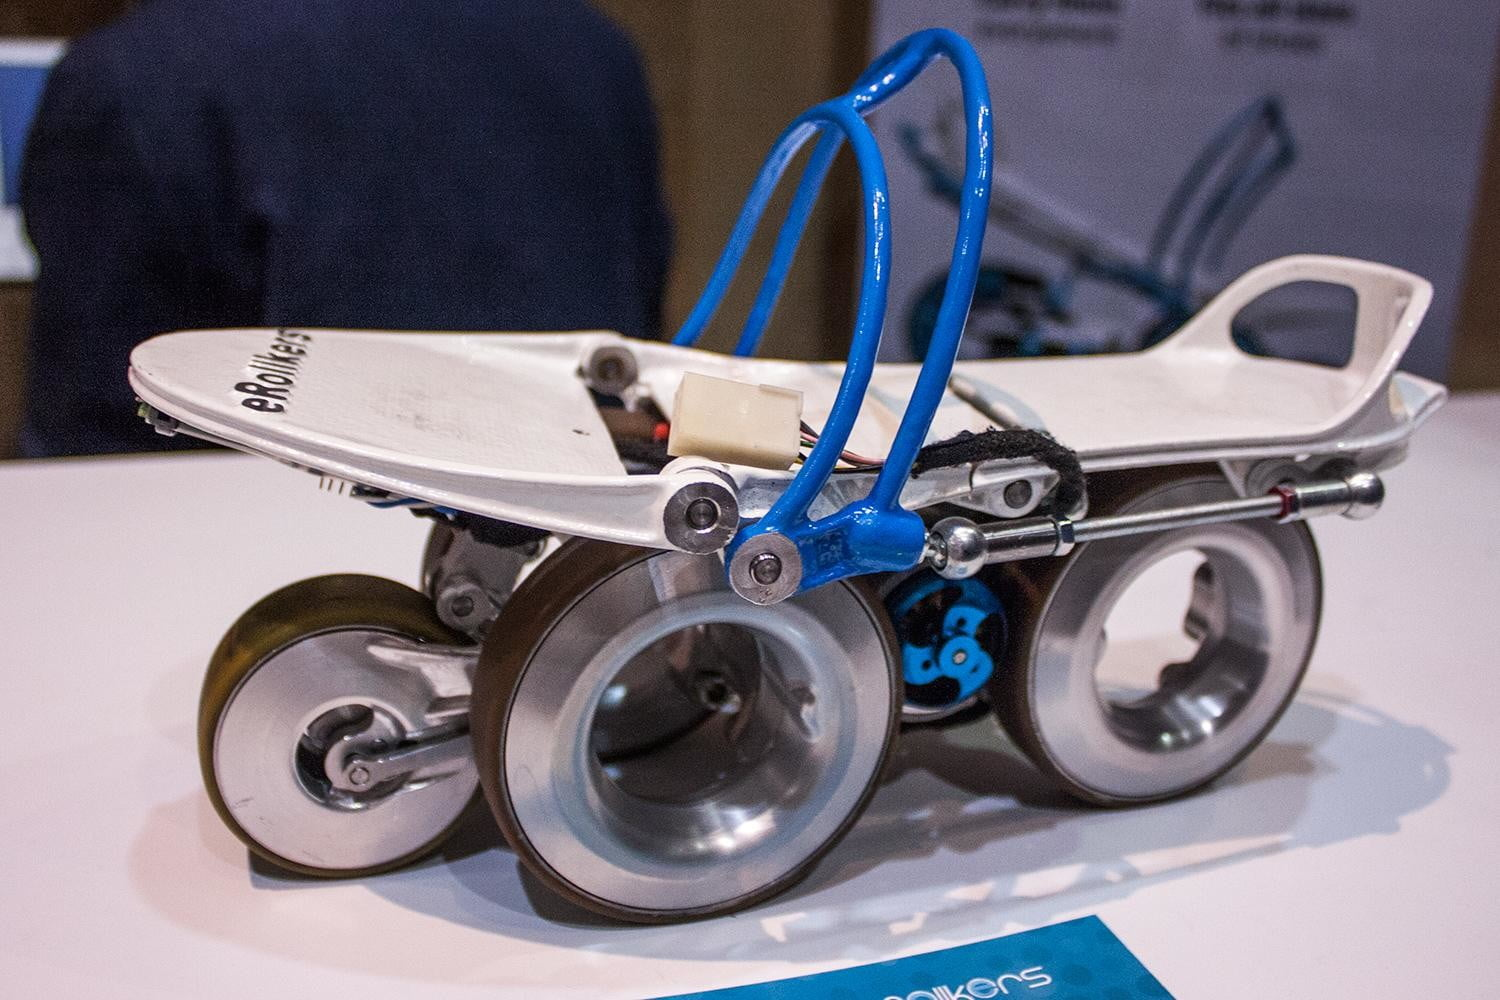 rollkers electronic skates let move 7 mph just walking